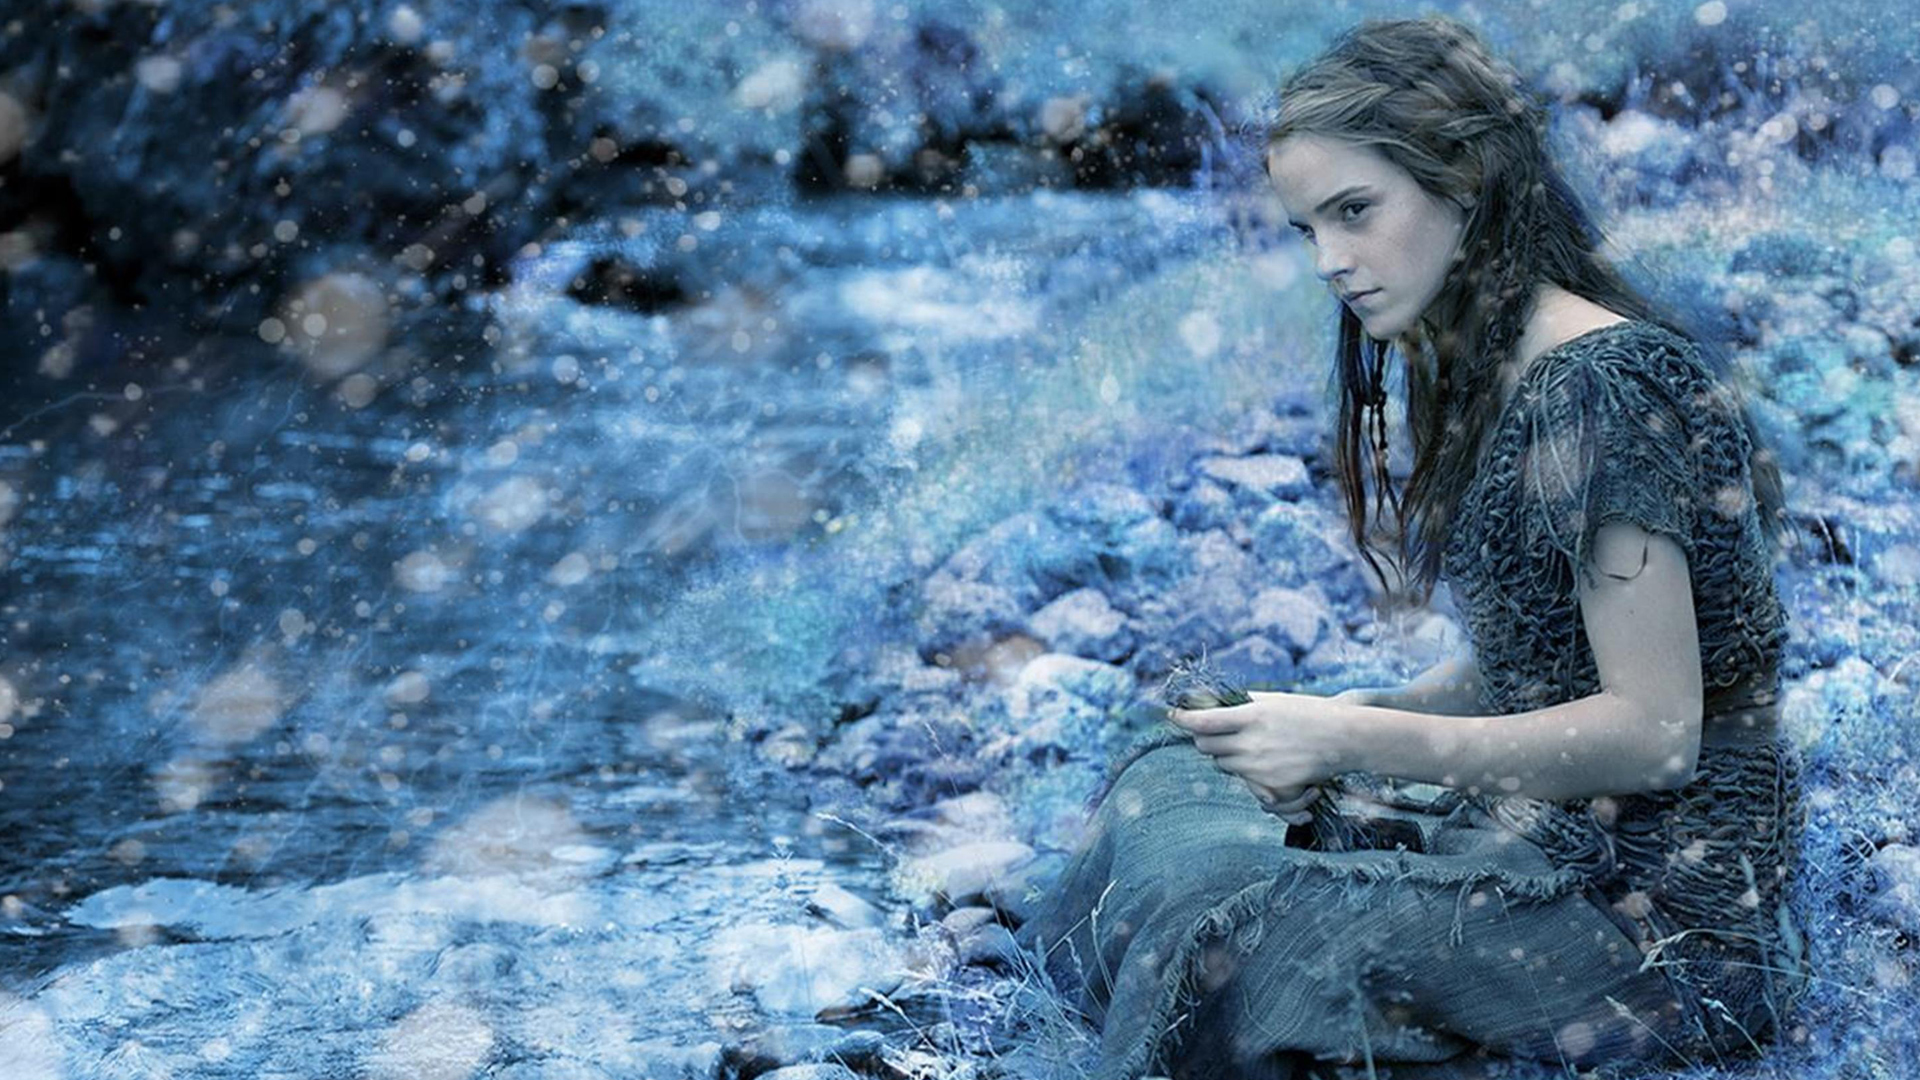 Noah 2014 Movie Emma Watson 6f Wallpaper HD